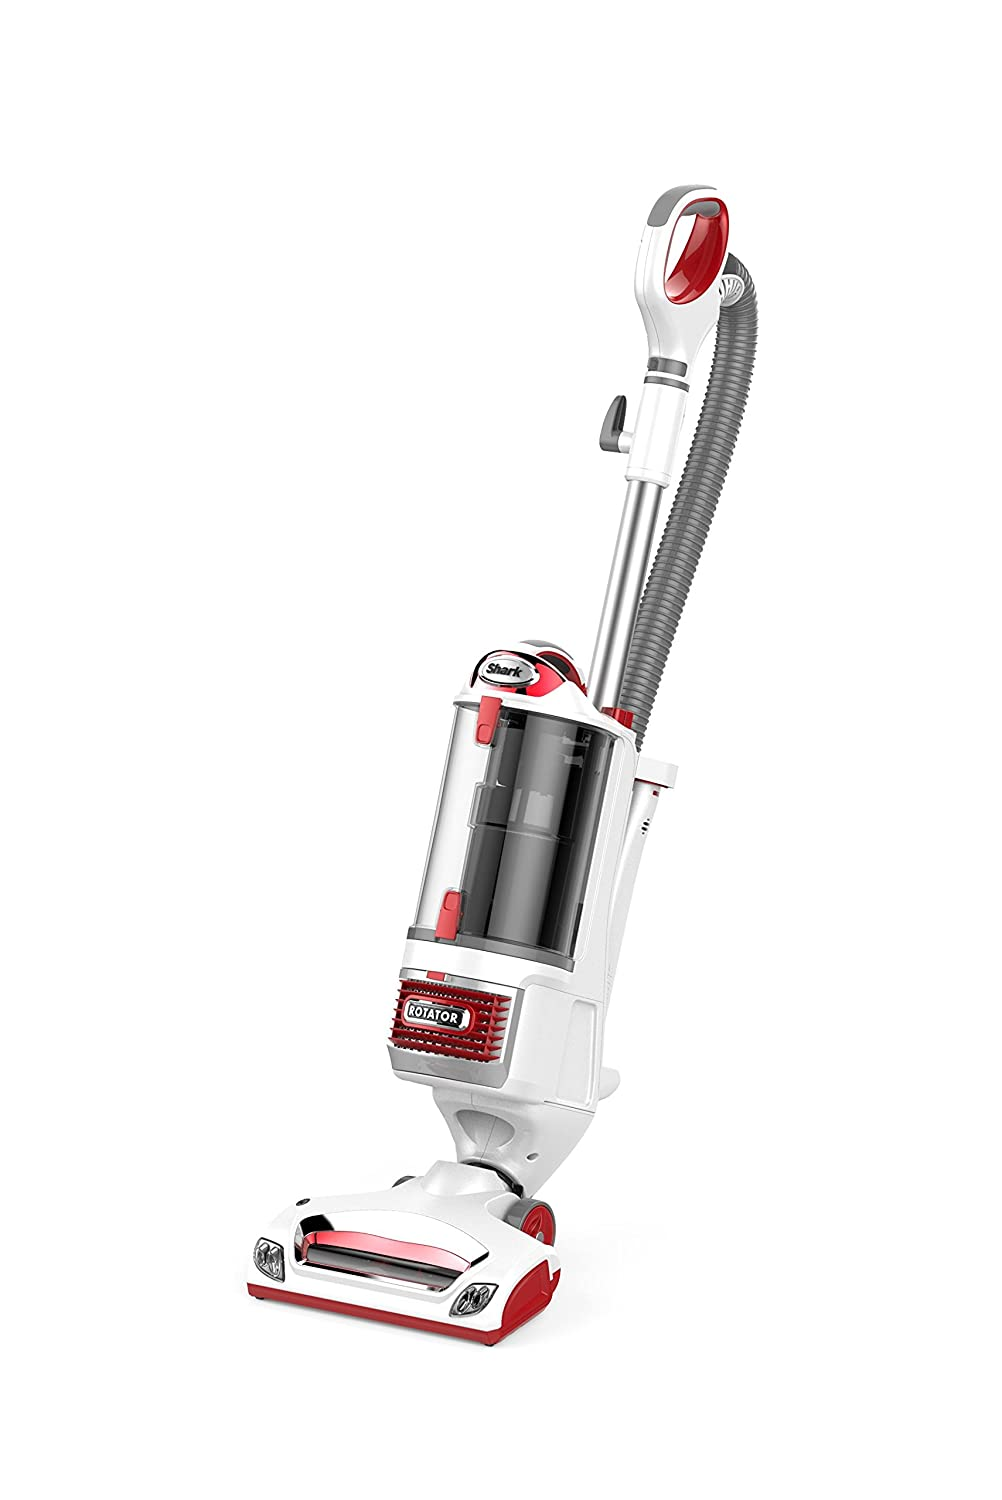 Shark Rotator Vacuum Cleaner Black Friday Deal 2019